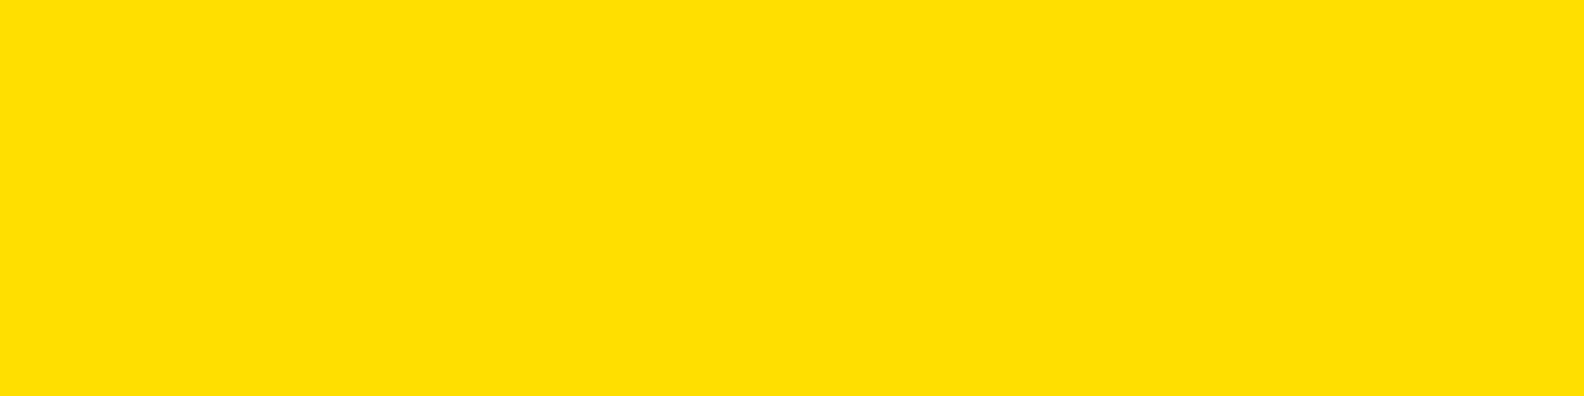 1584x396 Golden Yellow Solid Color Background